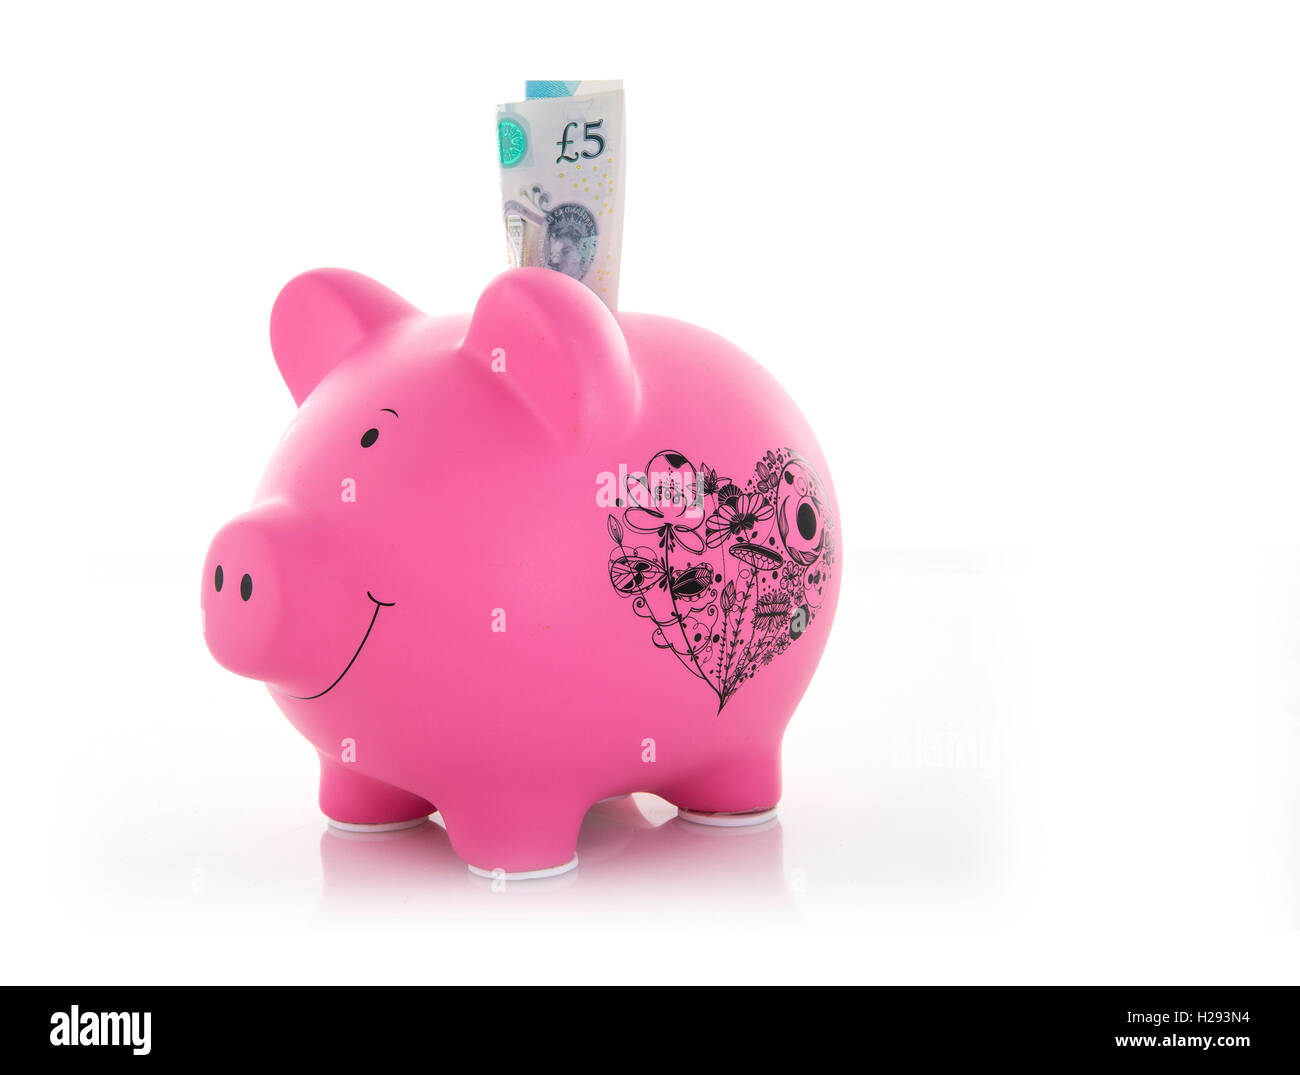 Pink Piggy Bank with new five pound note on a white Background - Stock Image